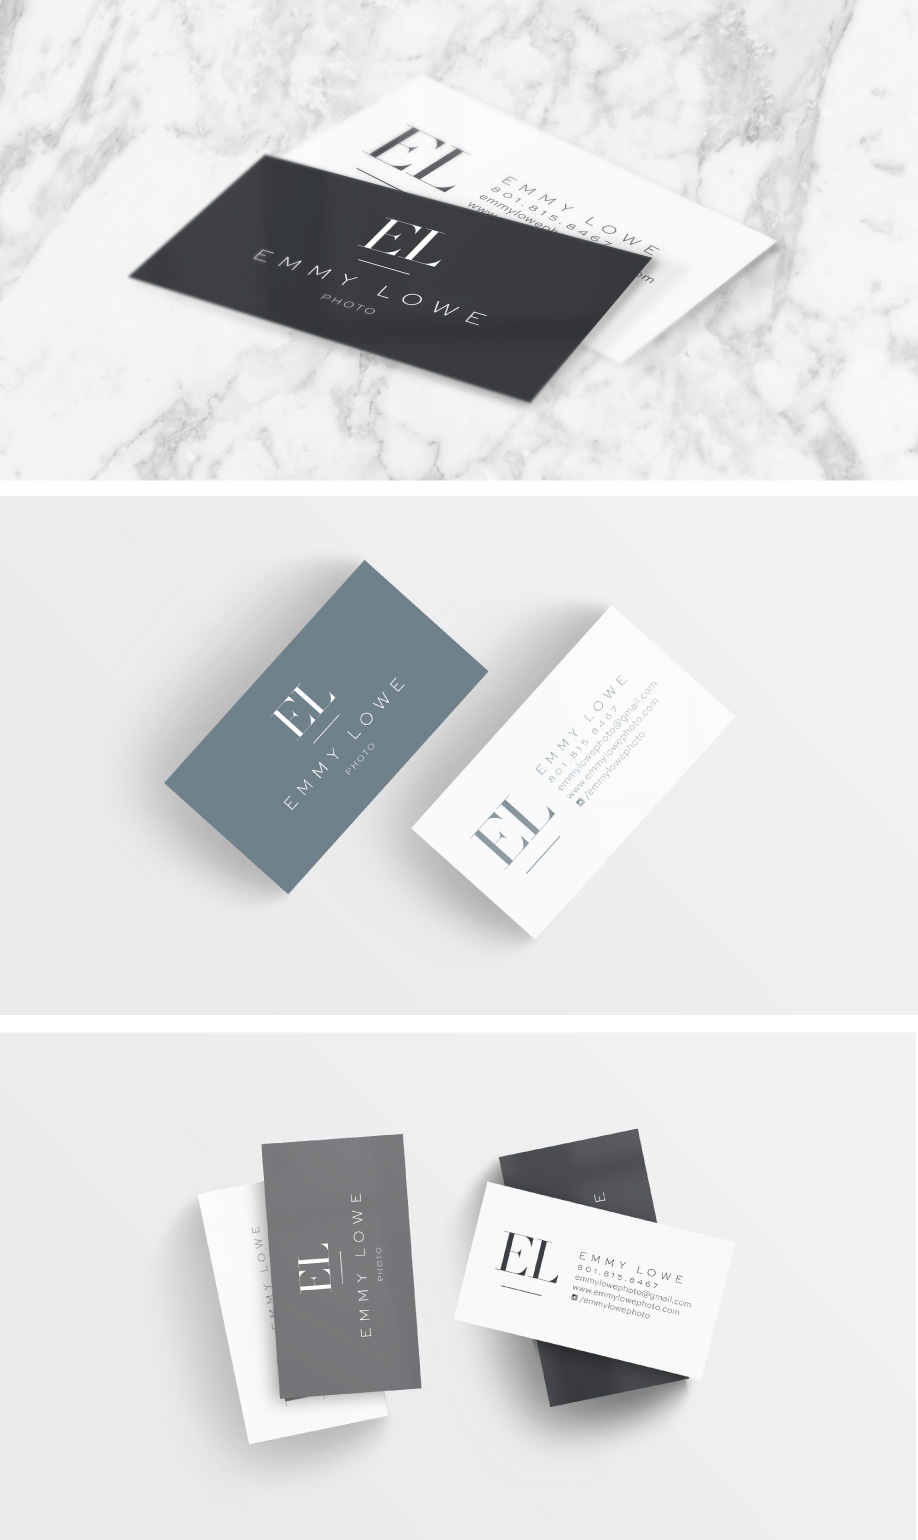 Emmy Lowe Business Cards